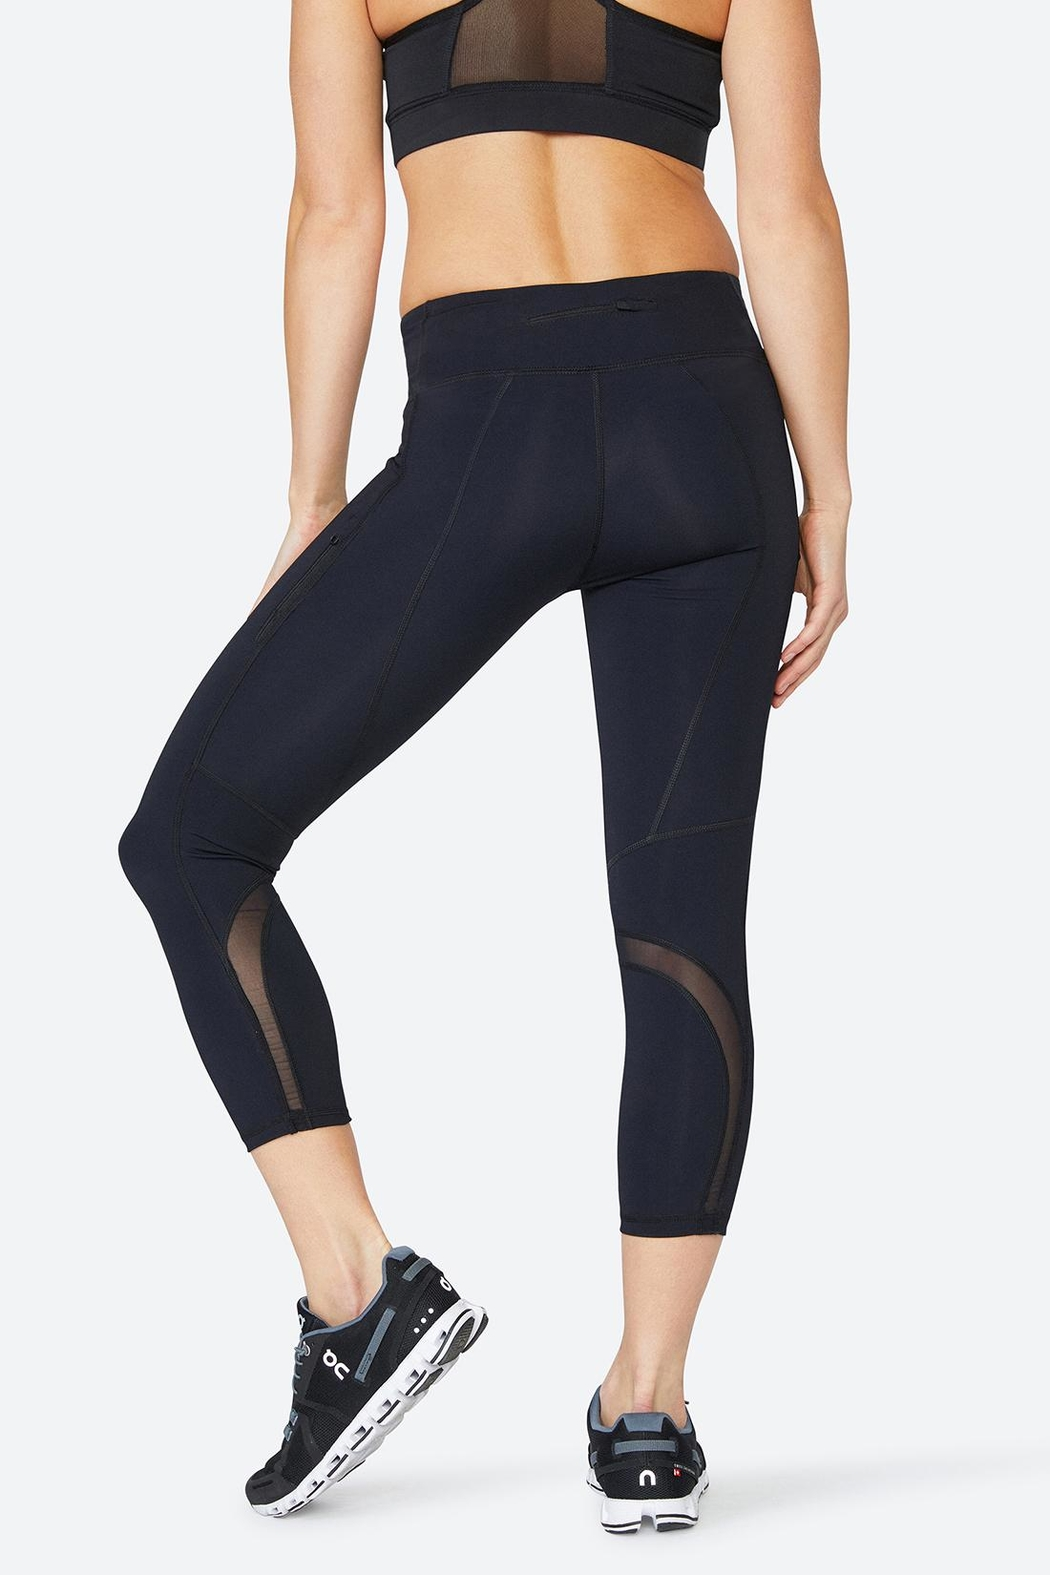 Solfire Chelsea Mesh Tight Leggings - Front Full Image